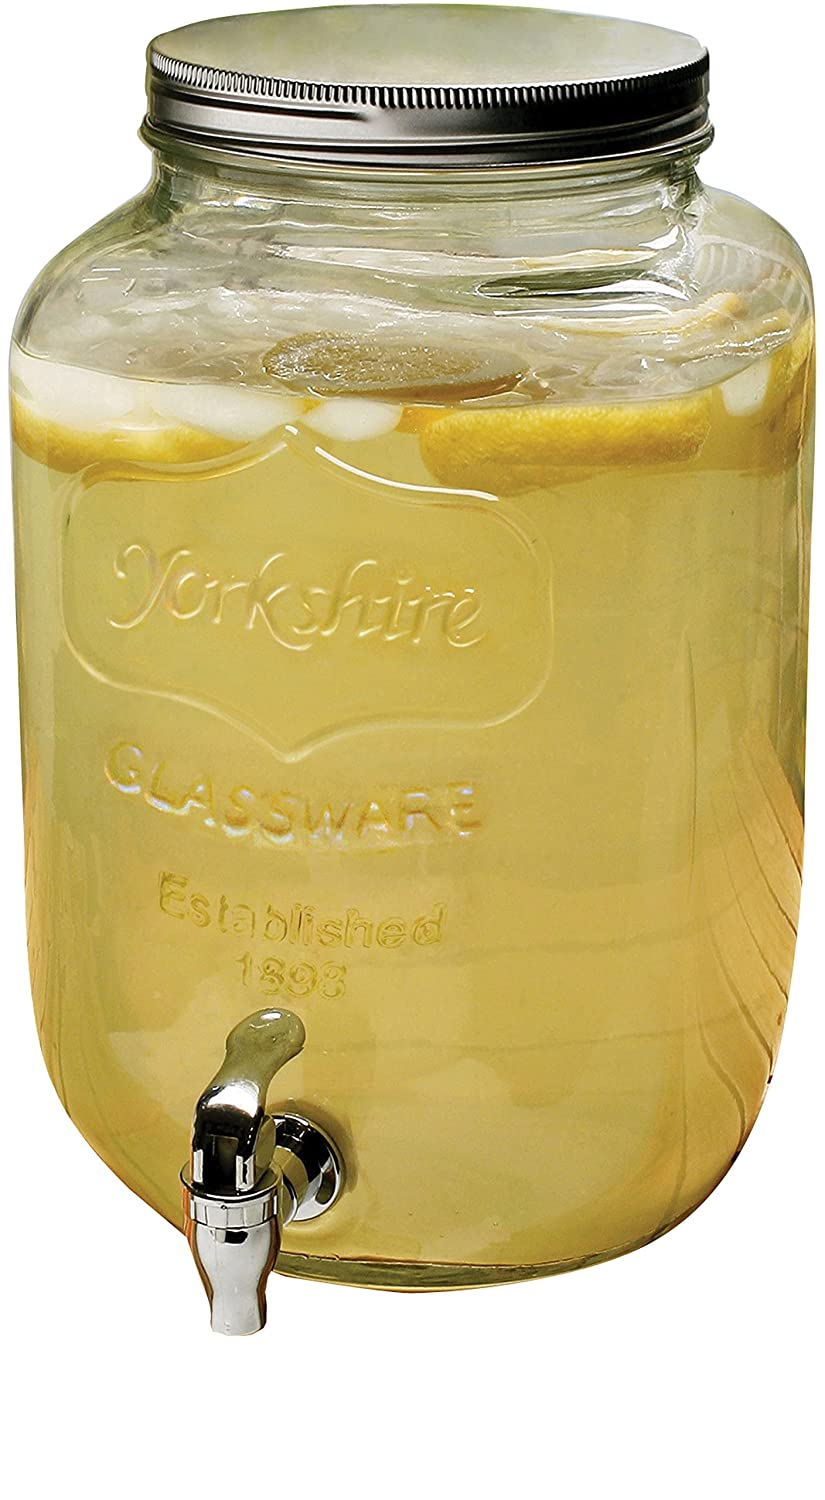 Circleware Yorkshire Sun Tea Mason Jar Glass Beverage Drink Dispenser with Metal Lid, 2 Gallon, Clear, Limited Edition Drinking Glassware 06900